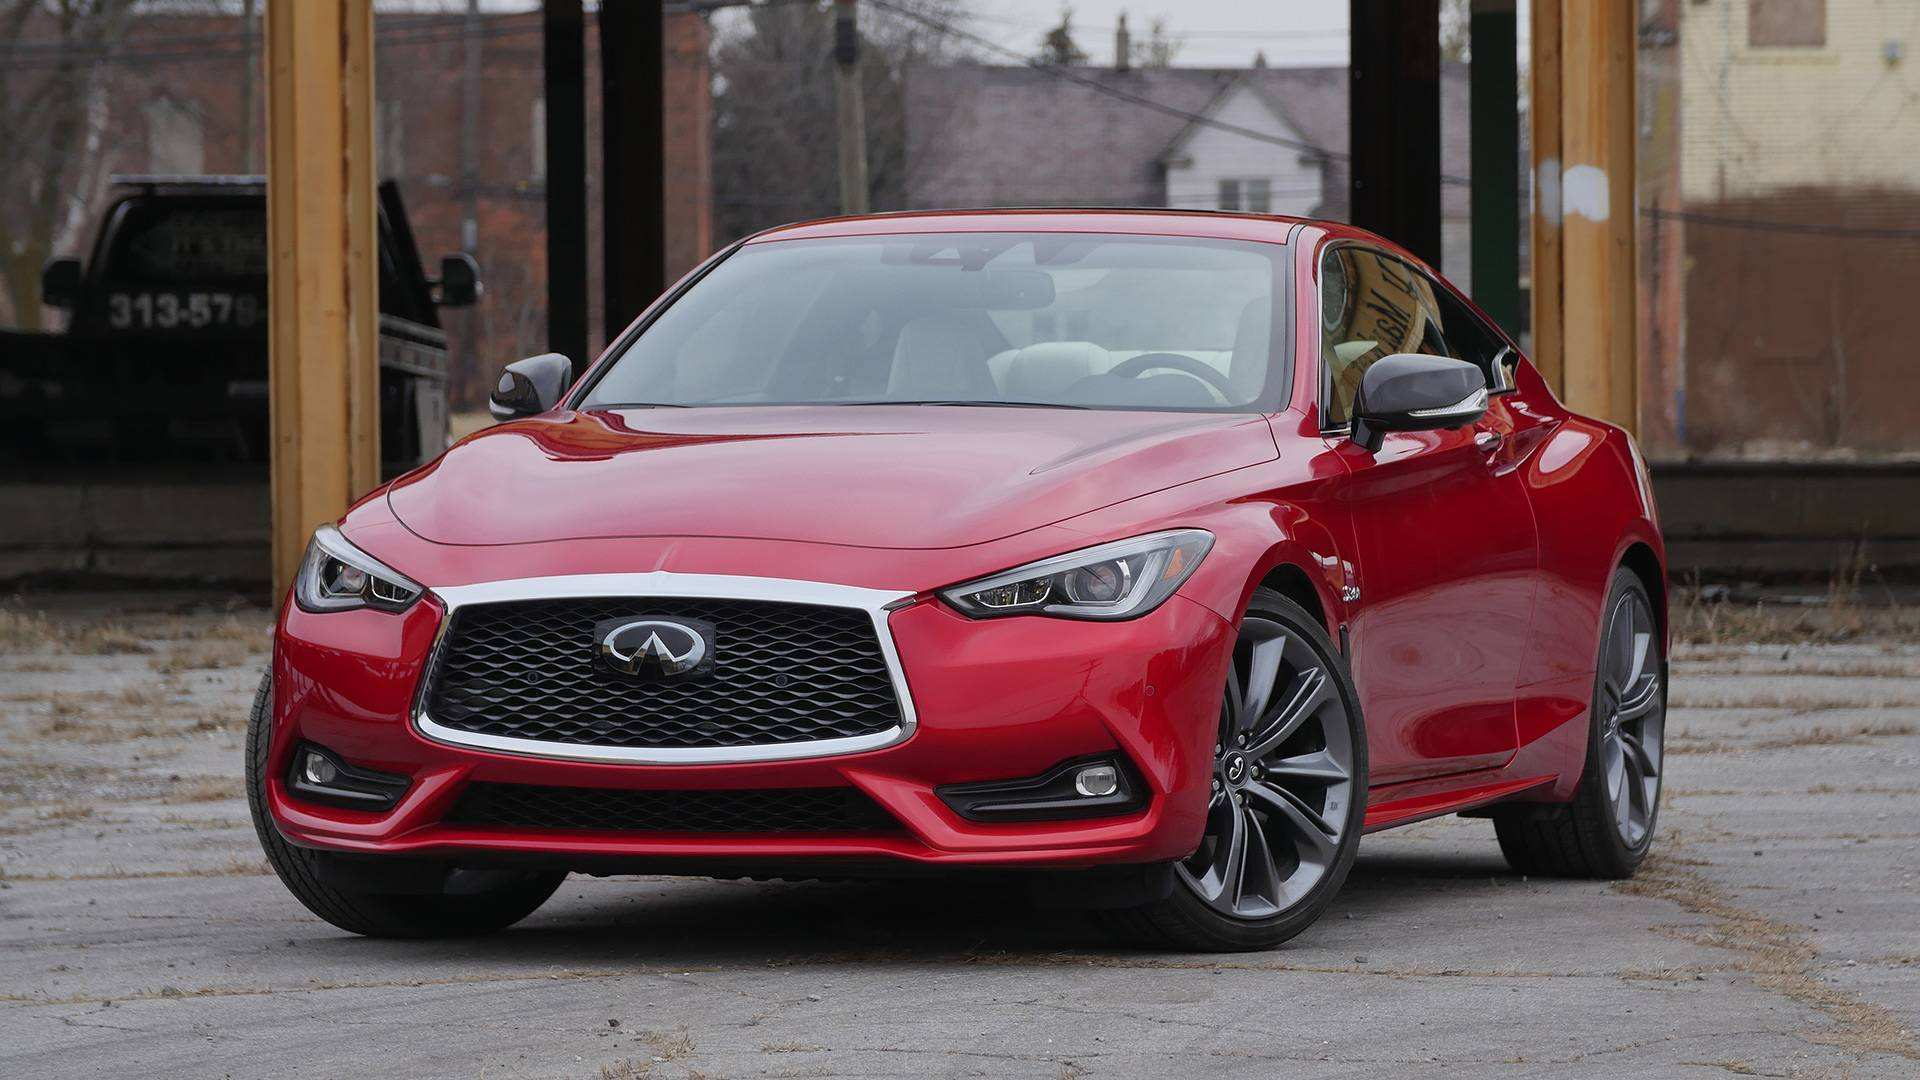 18 Great 2020 Infiniti Cars Model by 2020 Infiniti Cars